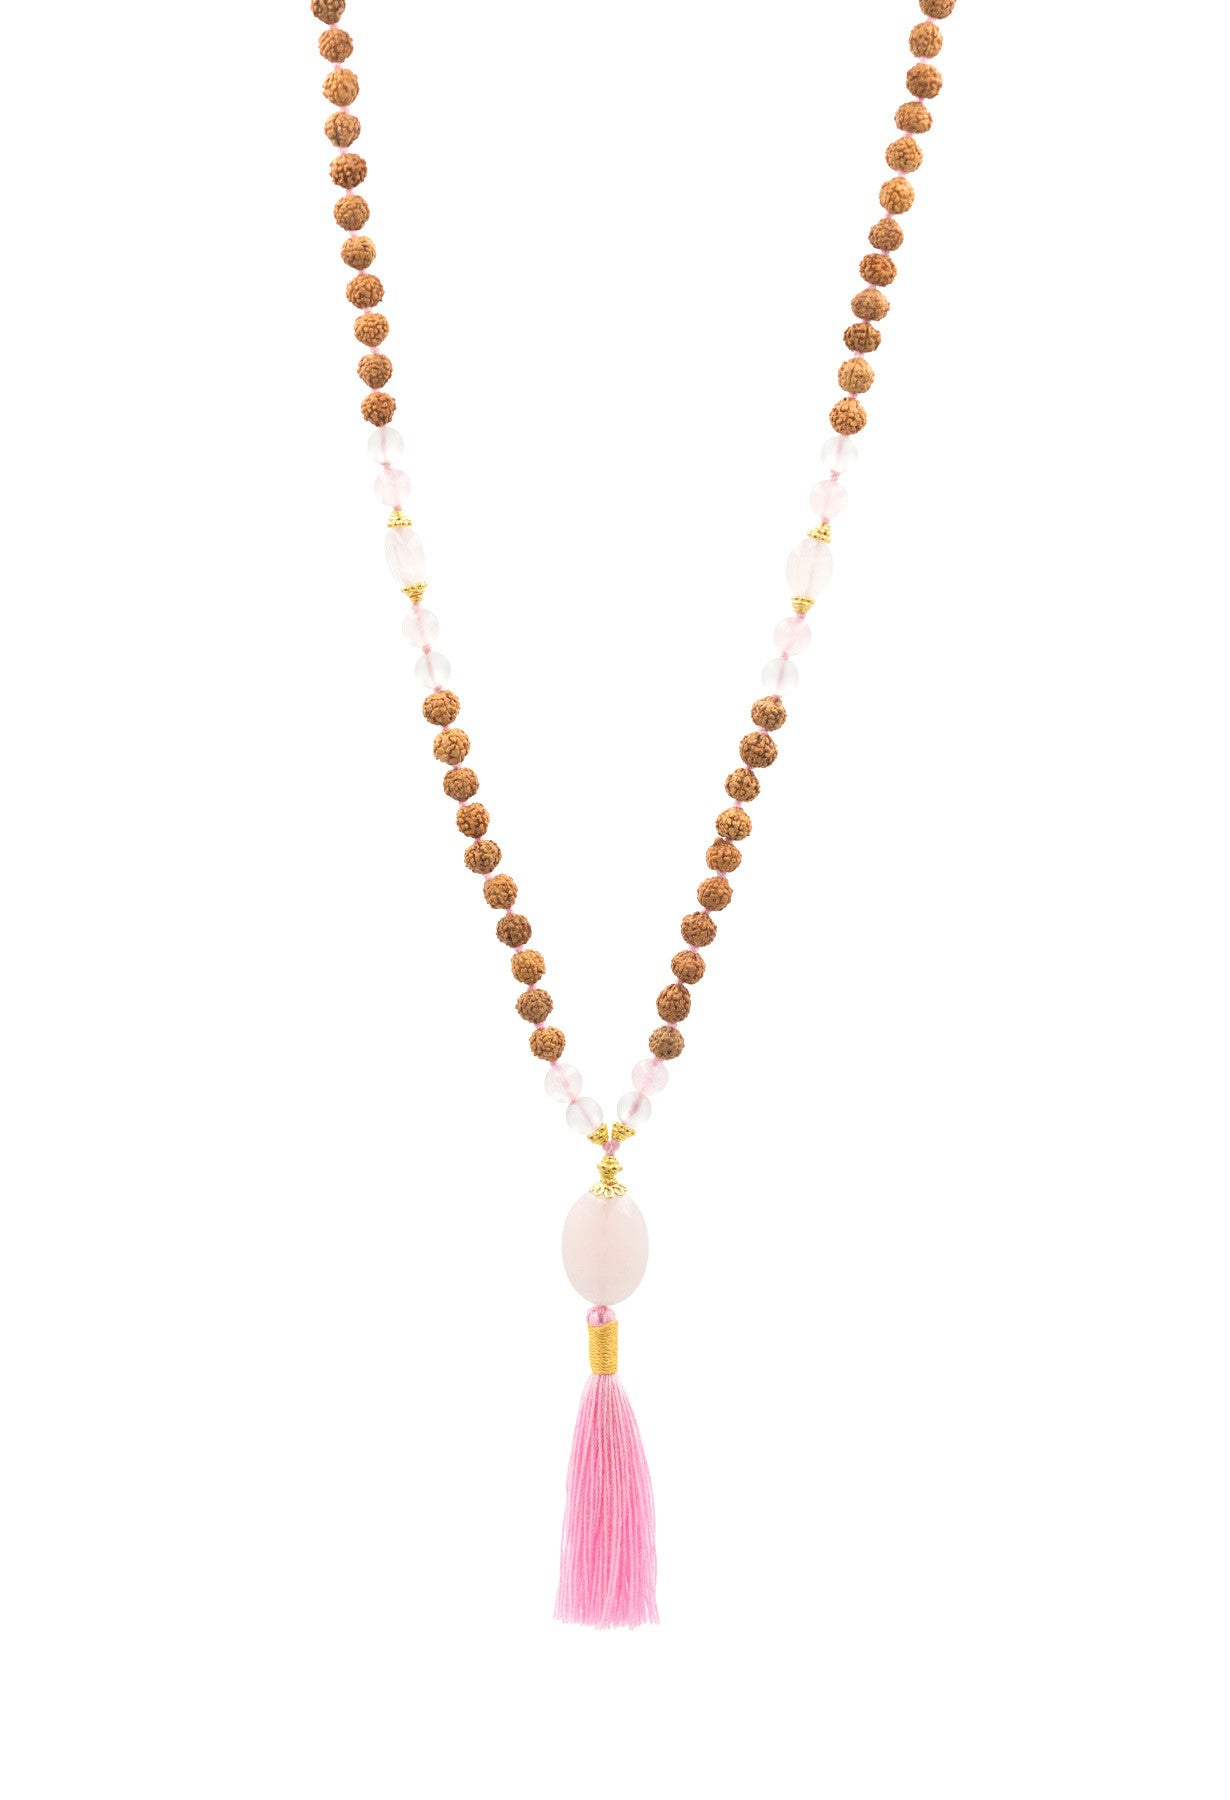 The Crown Chakra For Her Mala